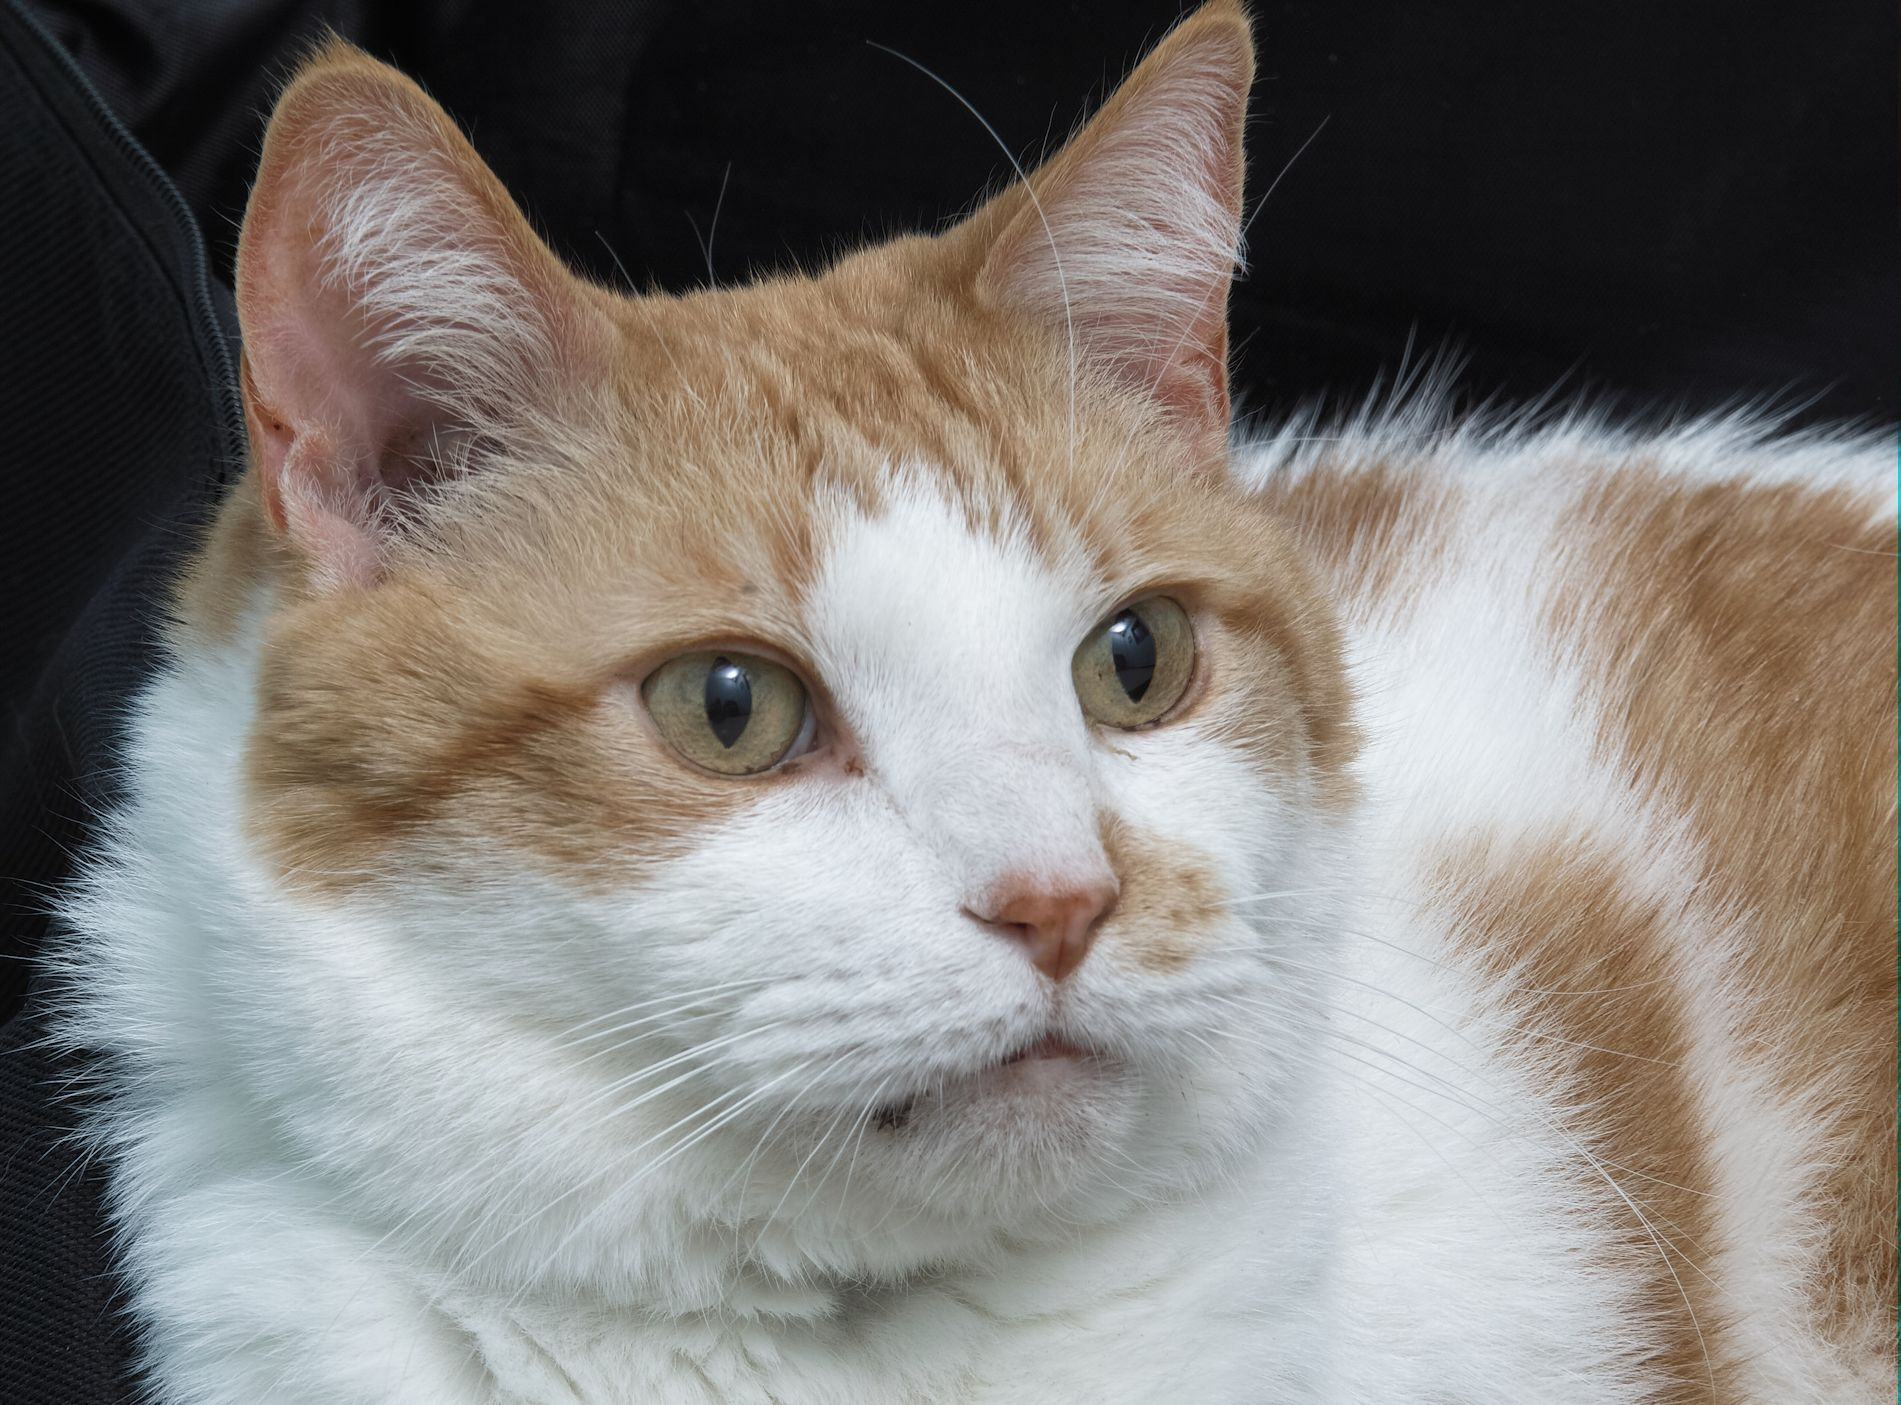 Murphy is a very sweet 10.5-year-old neutered male. He has been at HAWS since March--longer than any other cat at the shelter! He is patiently awaiting for his forever family to find him.